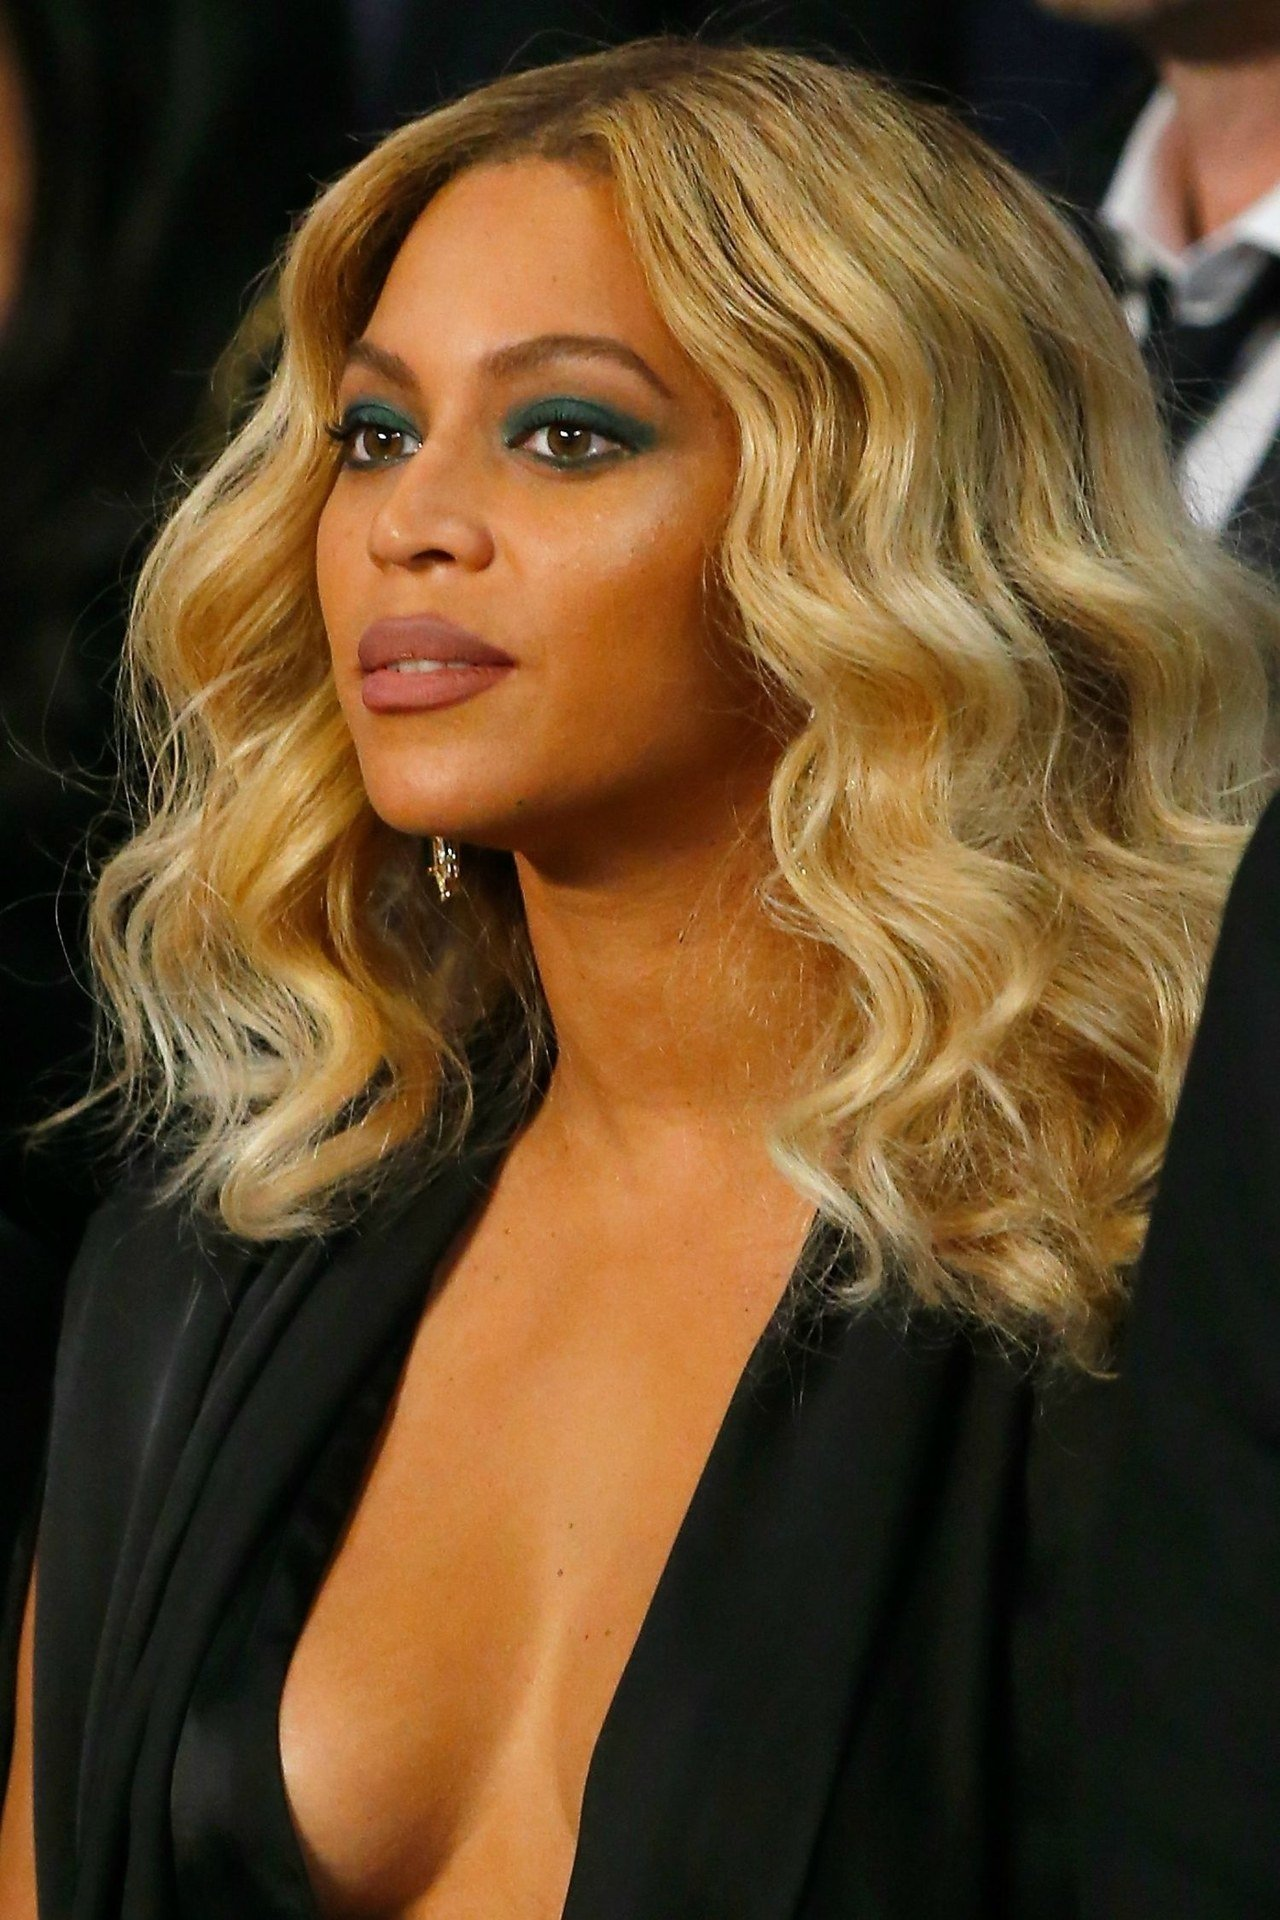 The Best How To Be A Better Blond From The Colorist Who Got Pictures